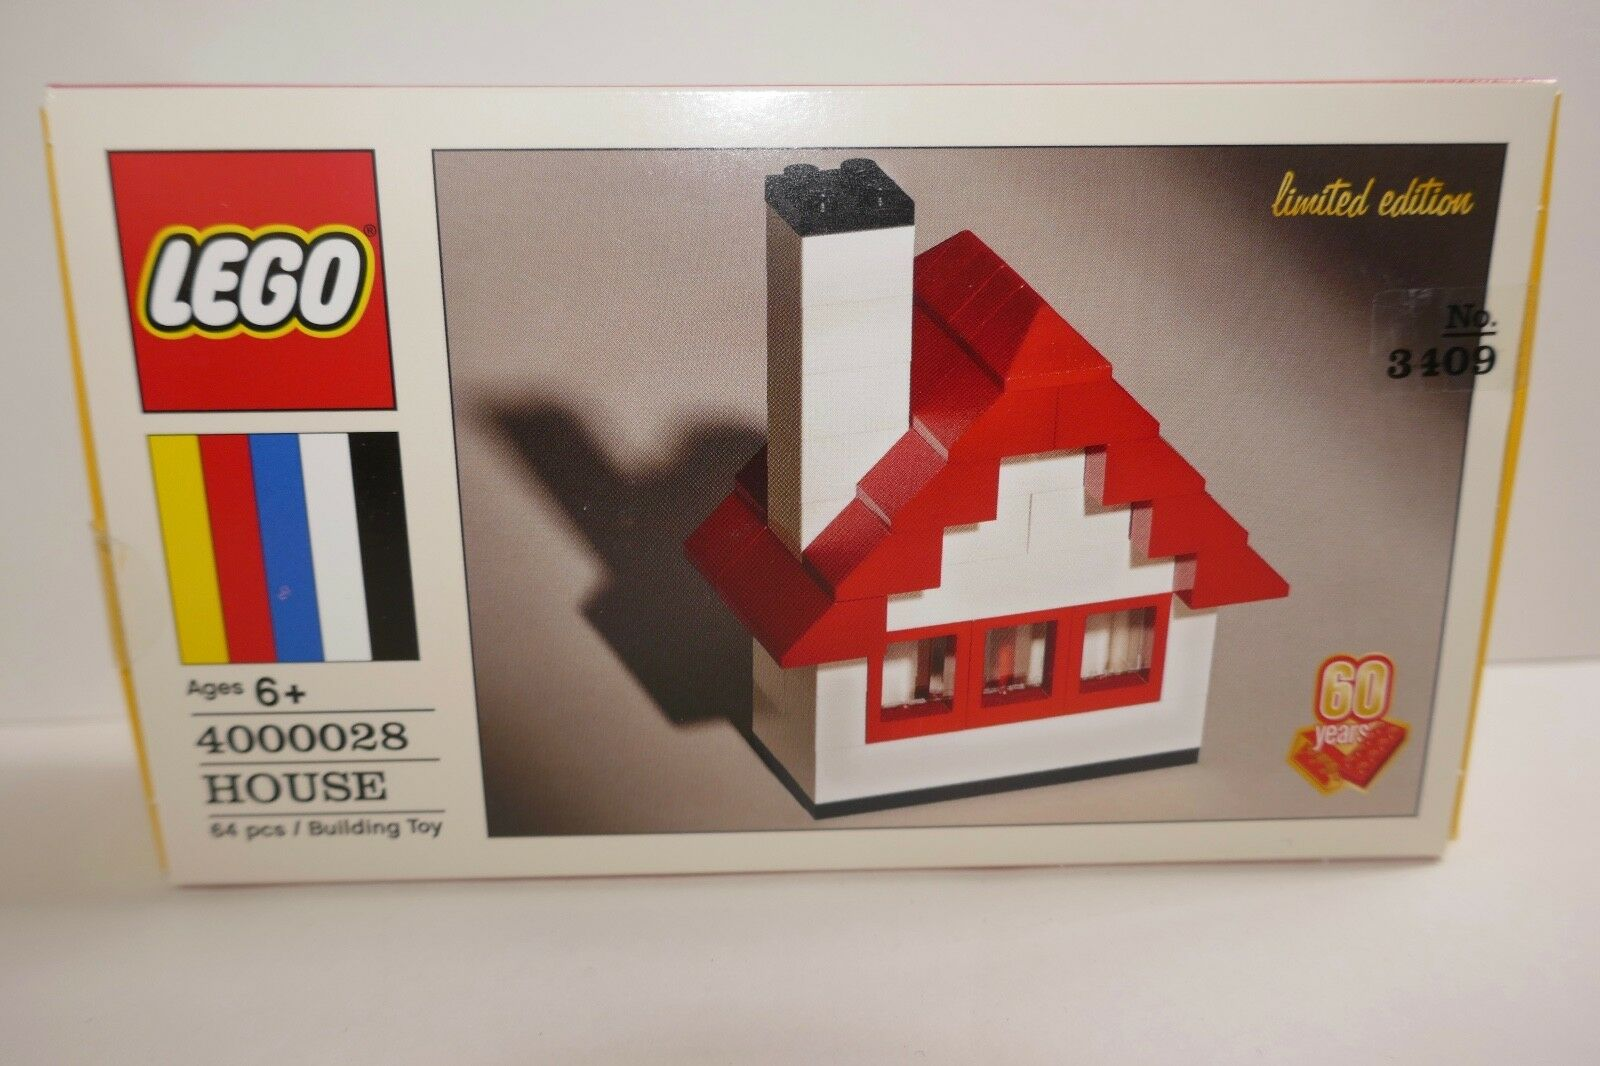 Lego 60th Anniversary Limited Edition House  4000028 RARE NumbeROT Box NEW